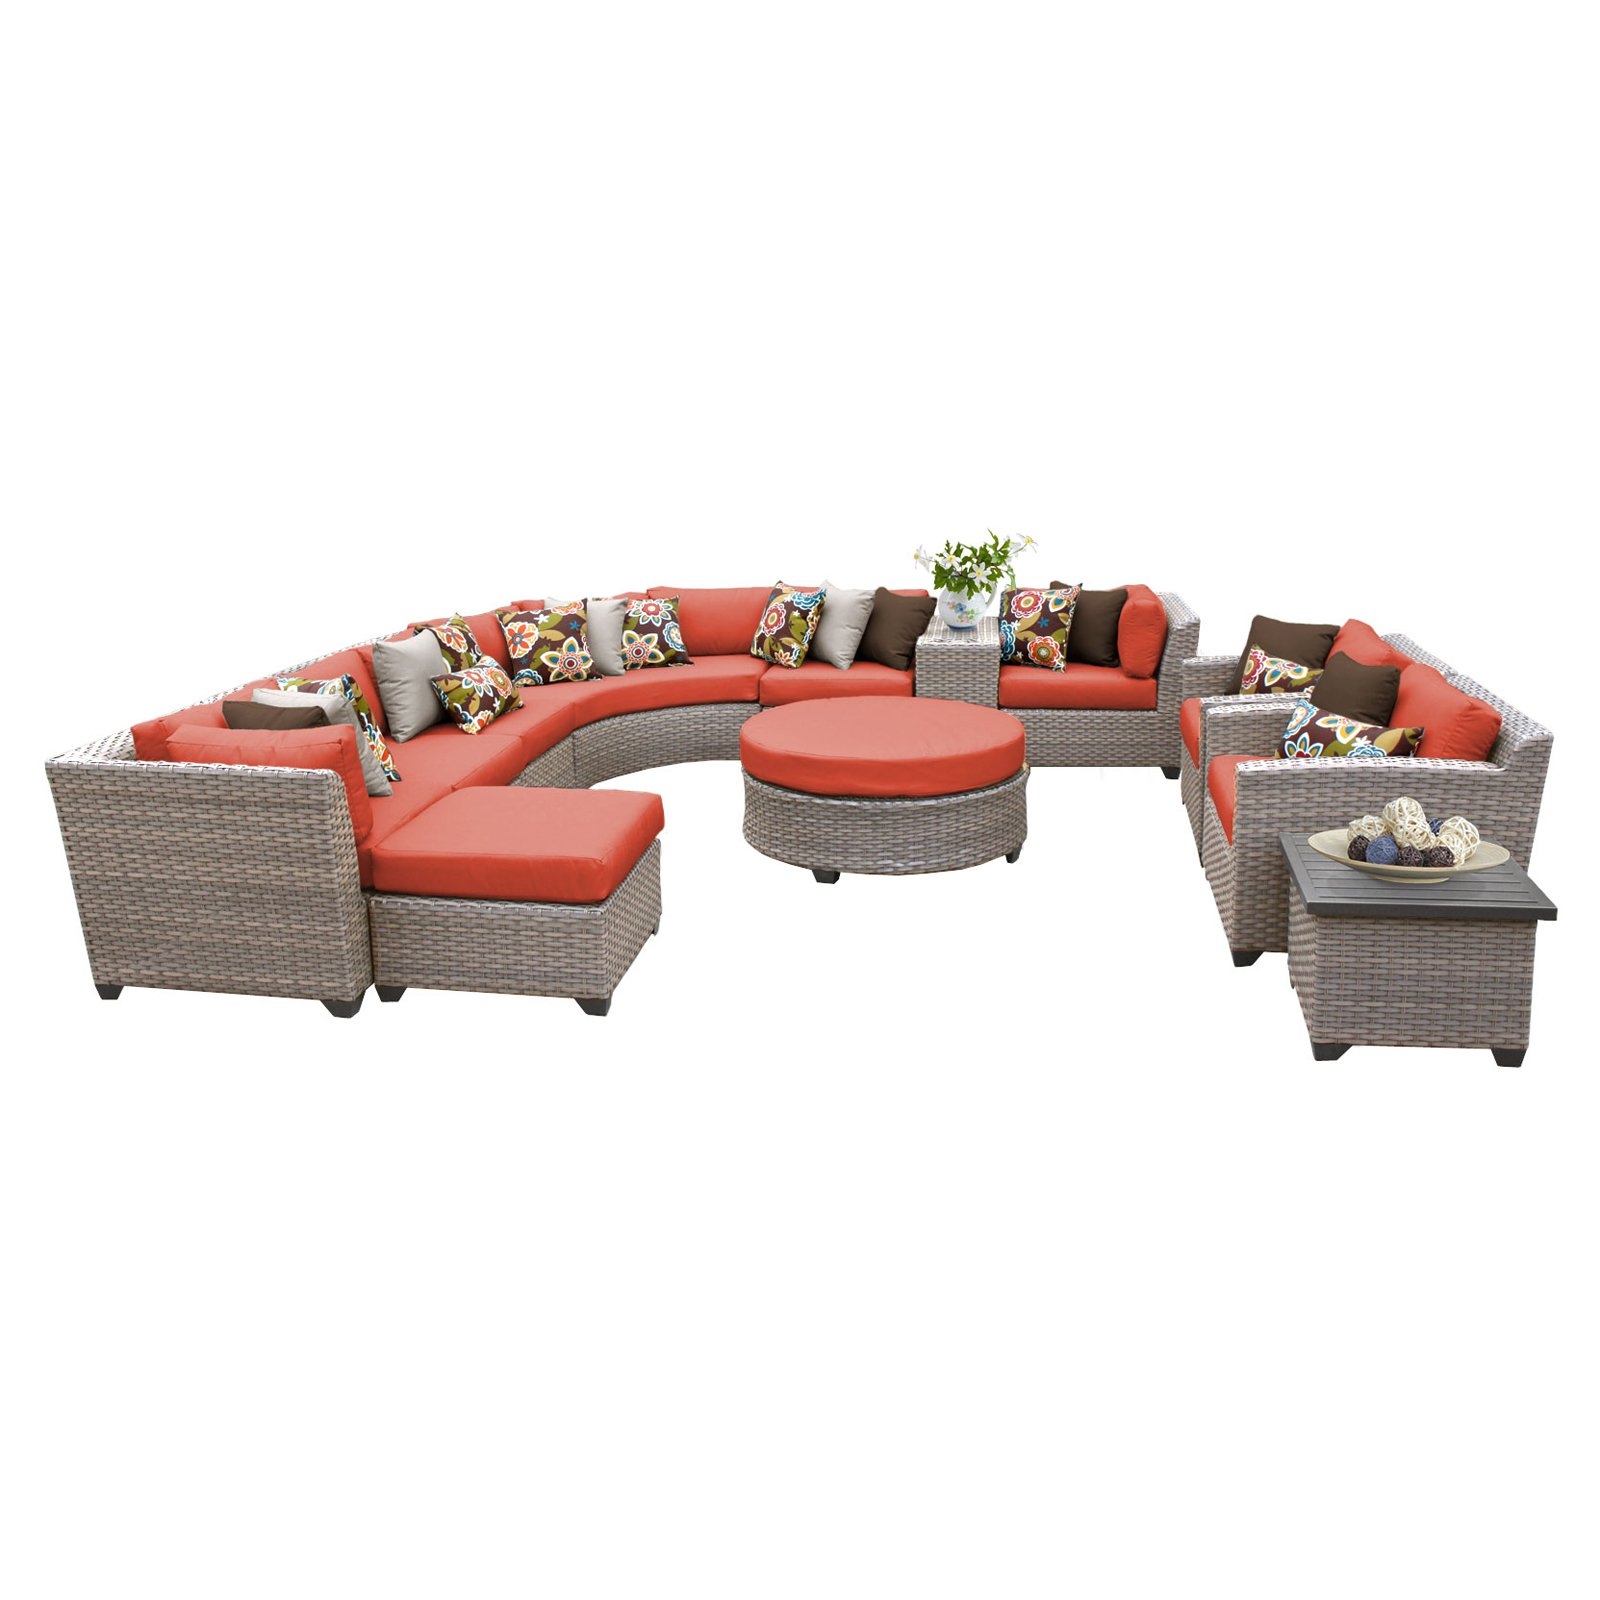 TK Classics Florence Wicker 12 Piece Patio Conversation Set with 2 Sets of Cushion Covers